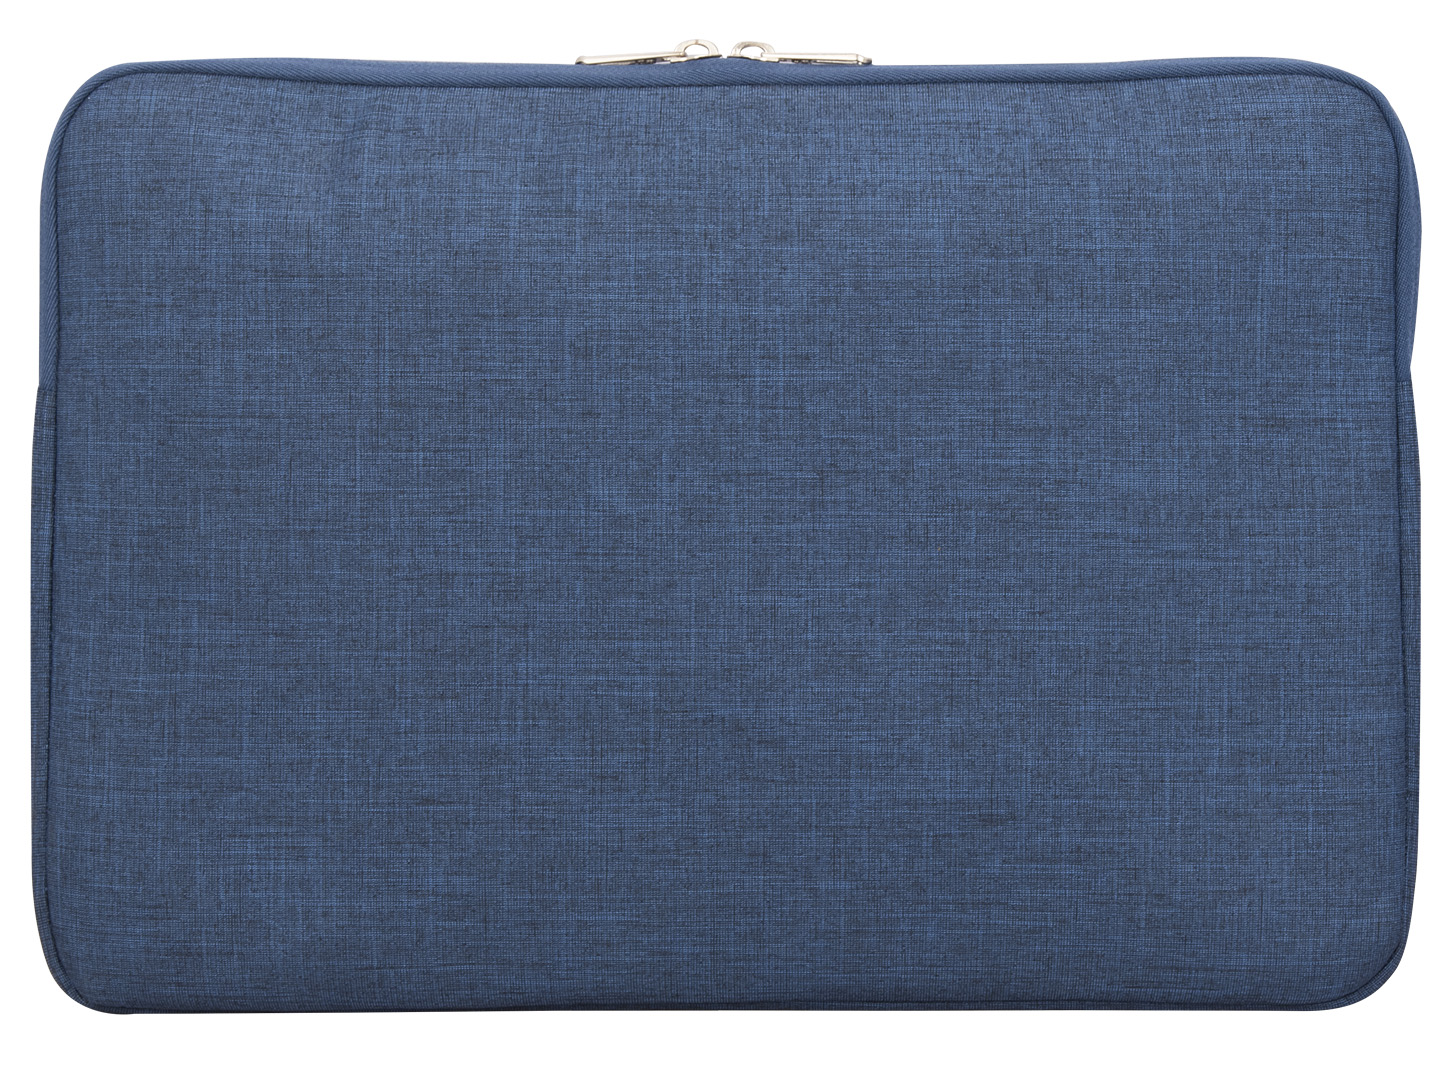 Affinity Navy Blue Laptop Sleeve for up to 15.6 inches Laptop